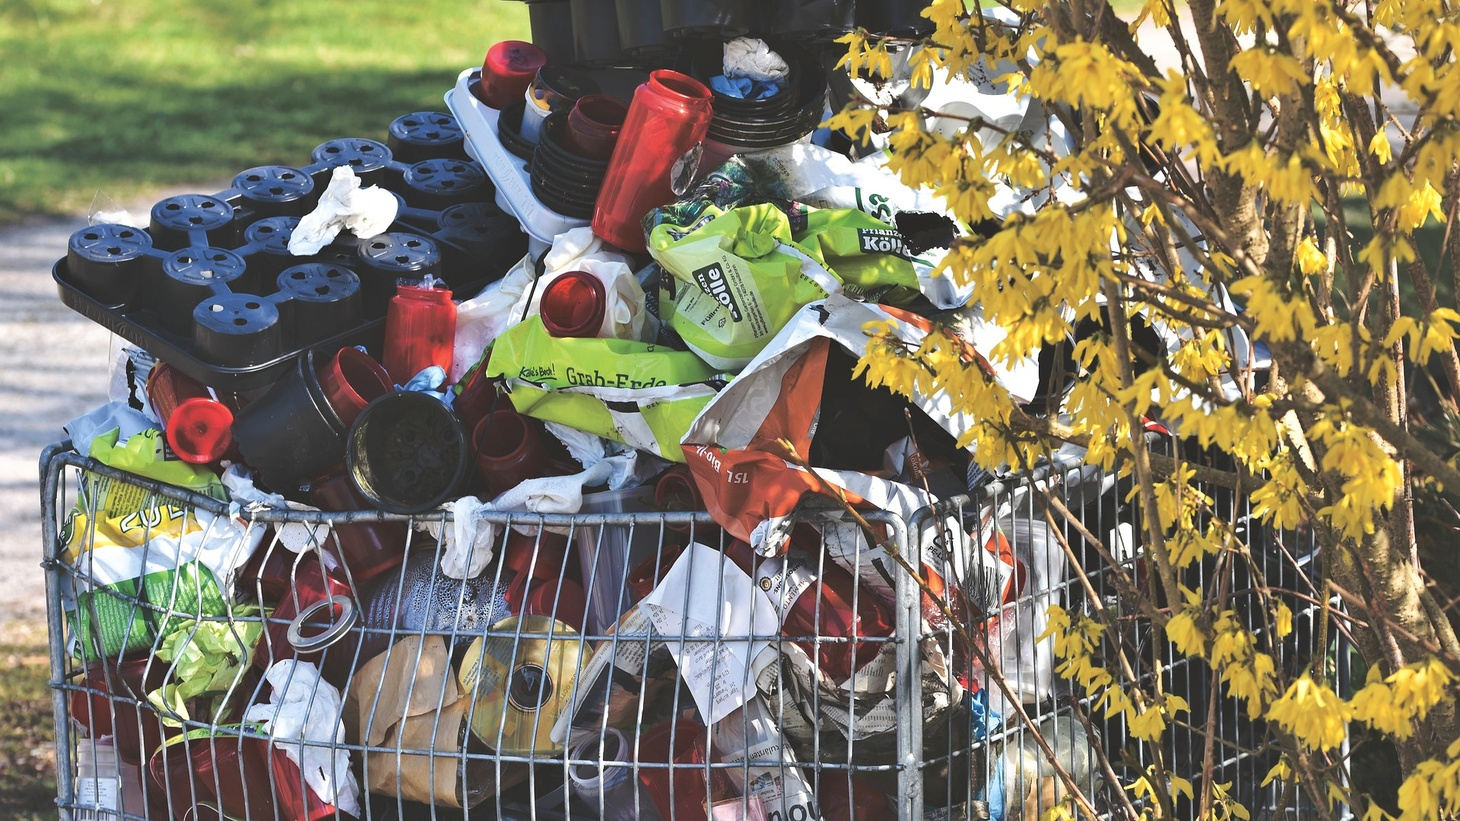 Stay-at-home orders have resulted in a spike in residential waste.